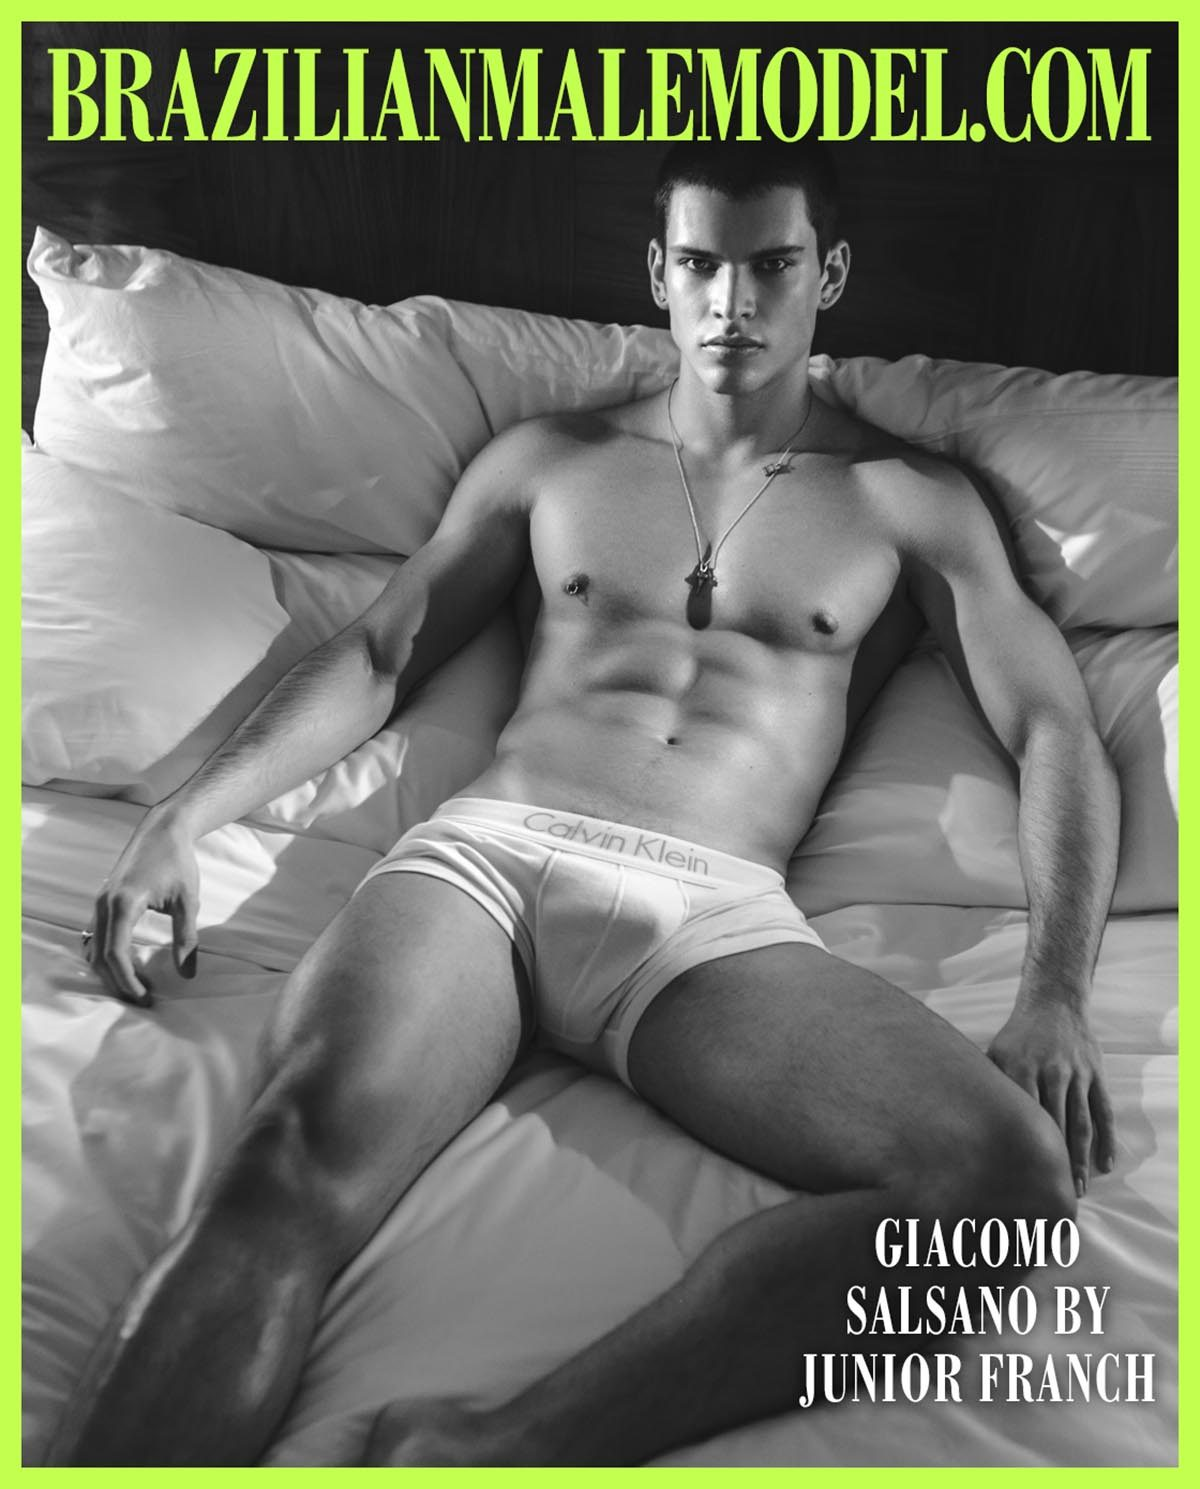 Giacomo Salsano by Junior Franch